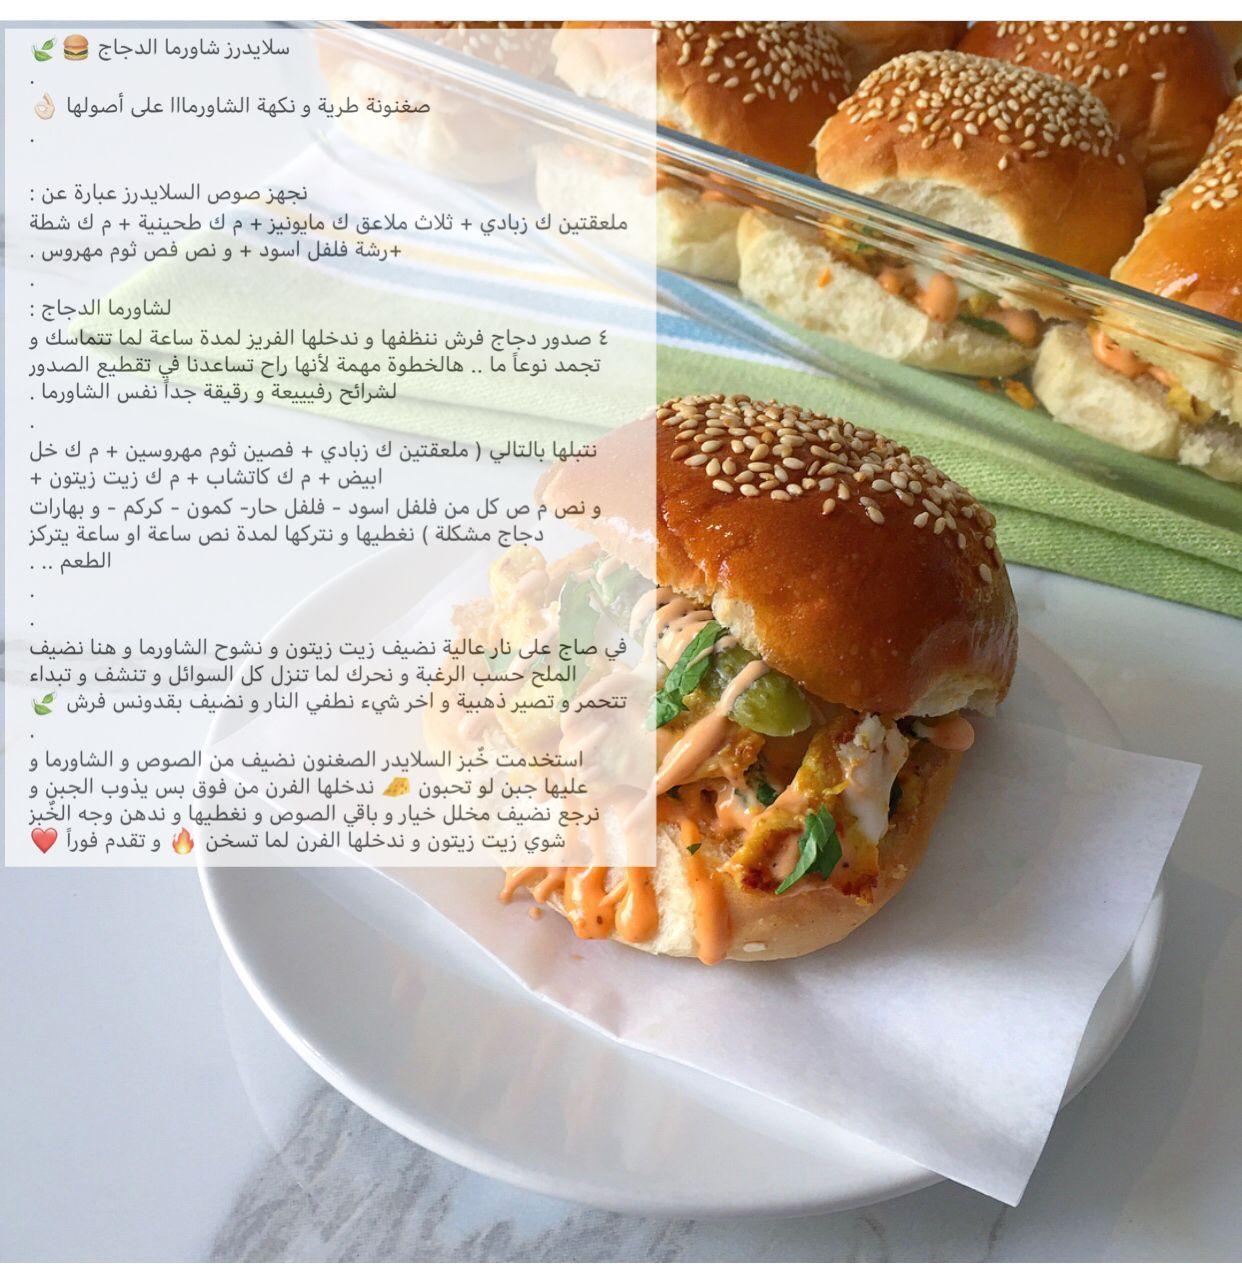 Pin By Amal Mohammed On Cooking Diy Food Recipes Food Recipies Food Receipes